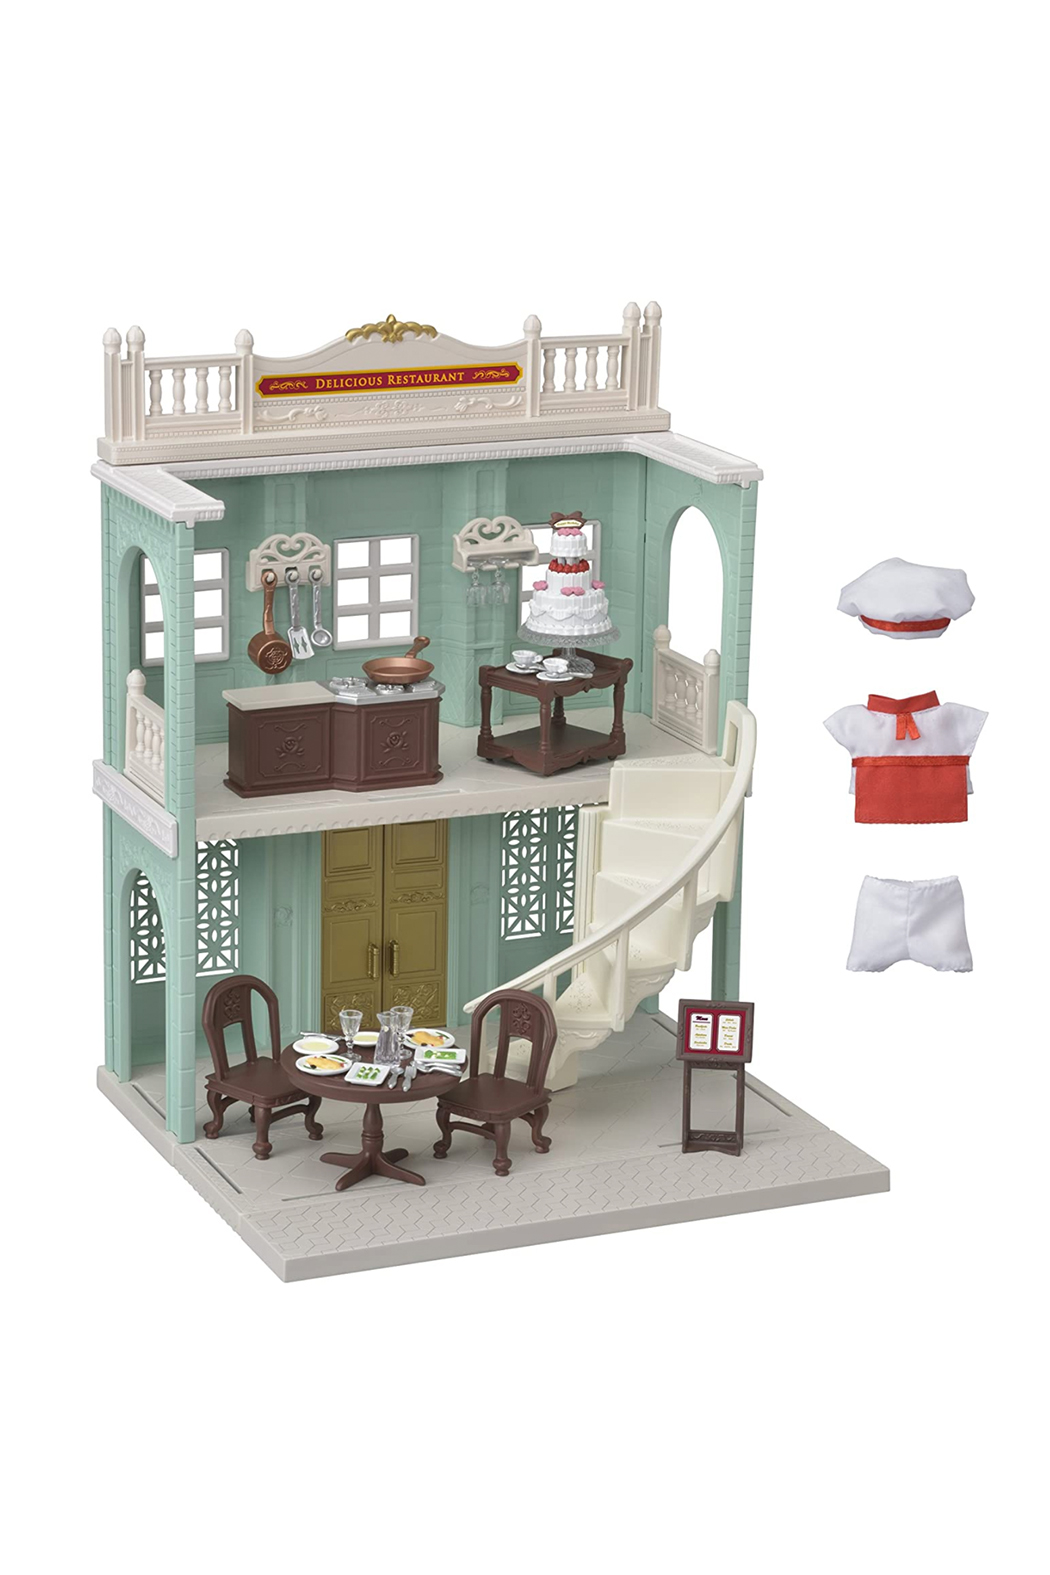 Calico Critters Delicious Restaurant - Main Image